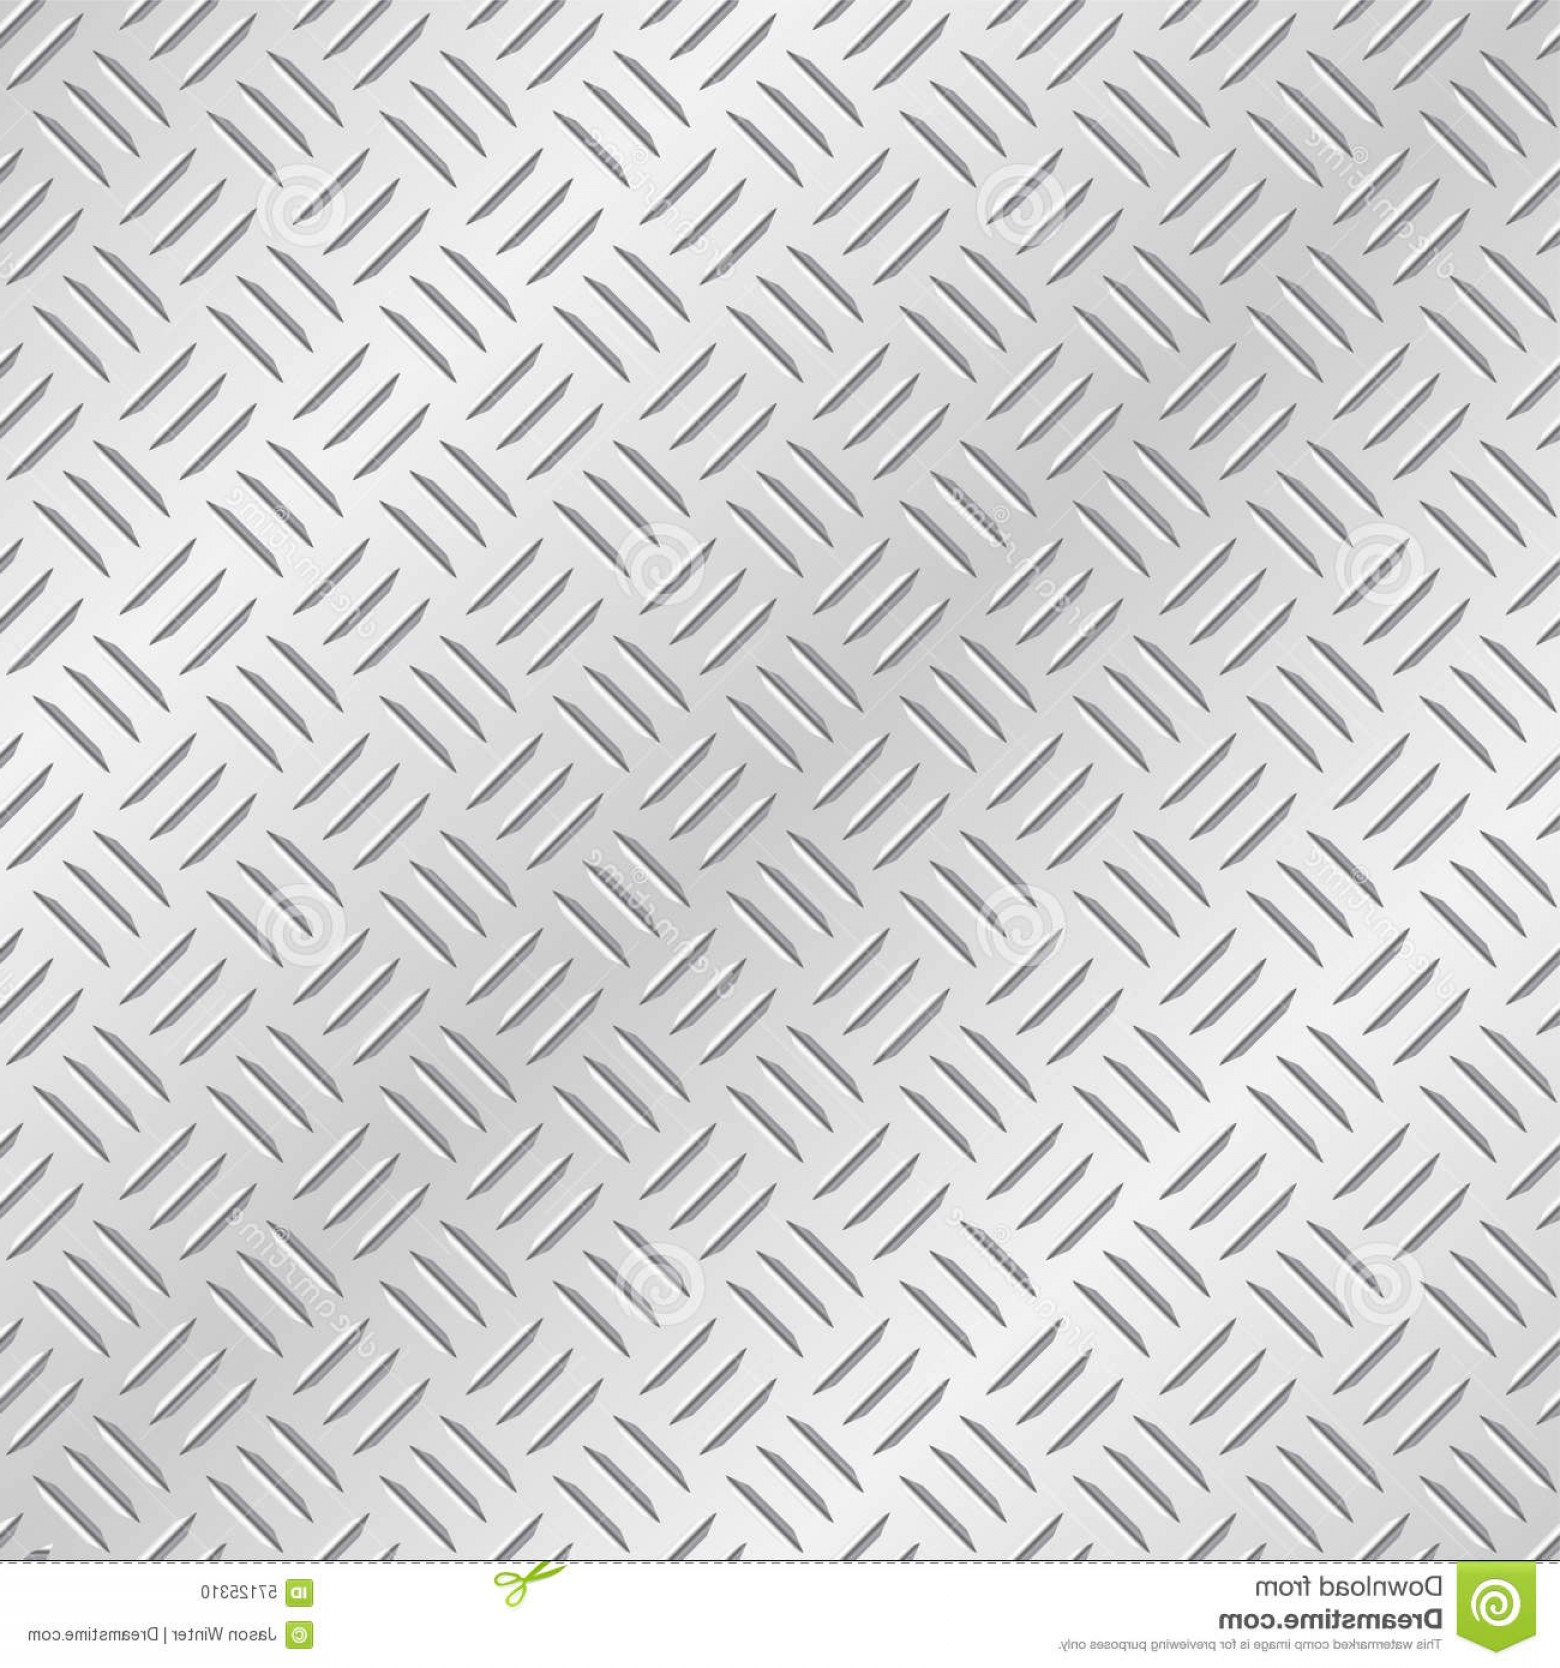 Tread Plate Vector: Stock Illustration Diamond Plate Metal Background Chequer Tileable Vector Wallpaper Repeats Left Right Up Down Image